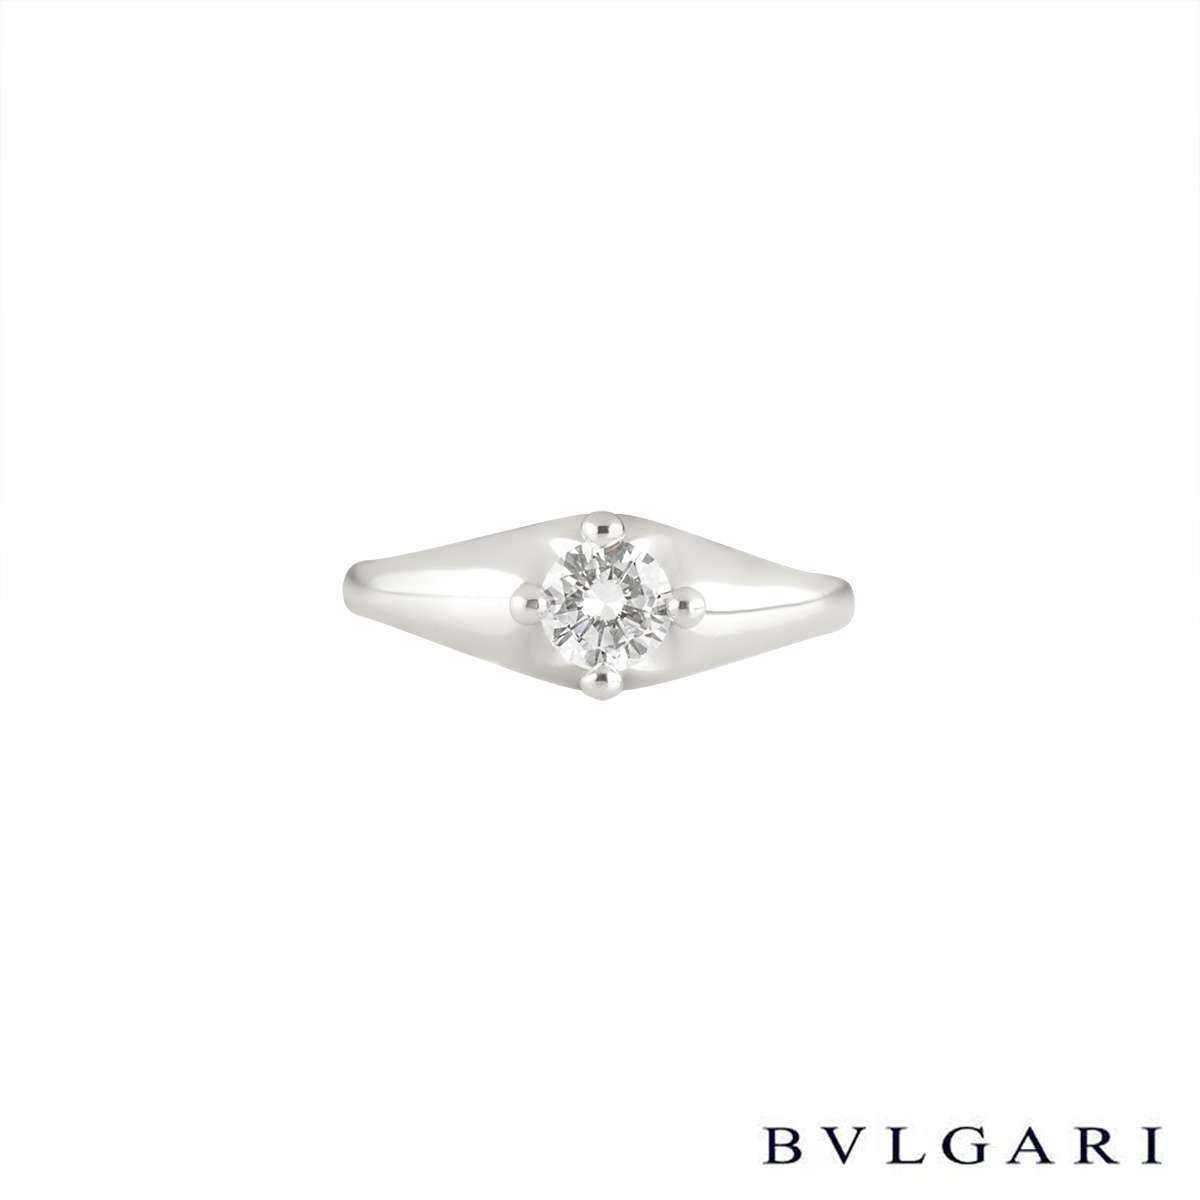 Bvlgari Round Brilliant Cut Diamond Ring in Platinum 0.35ct G/VVS2